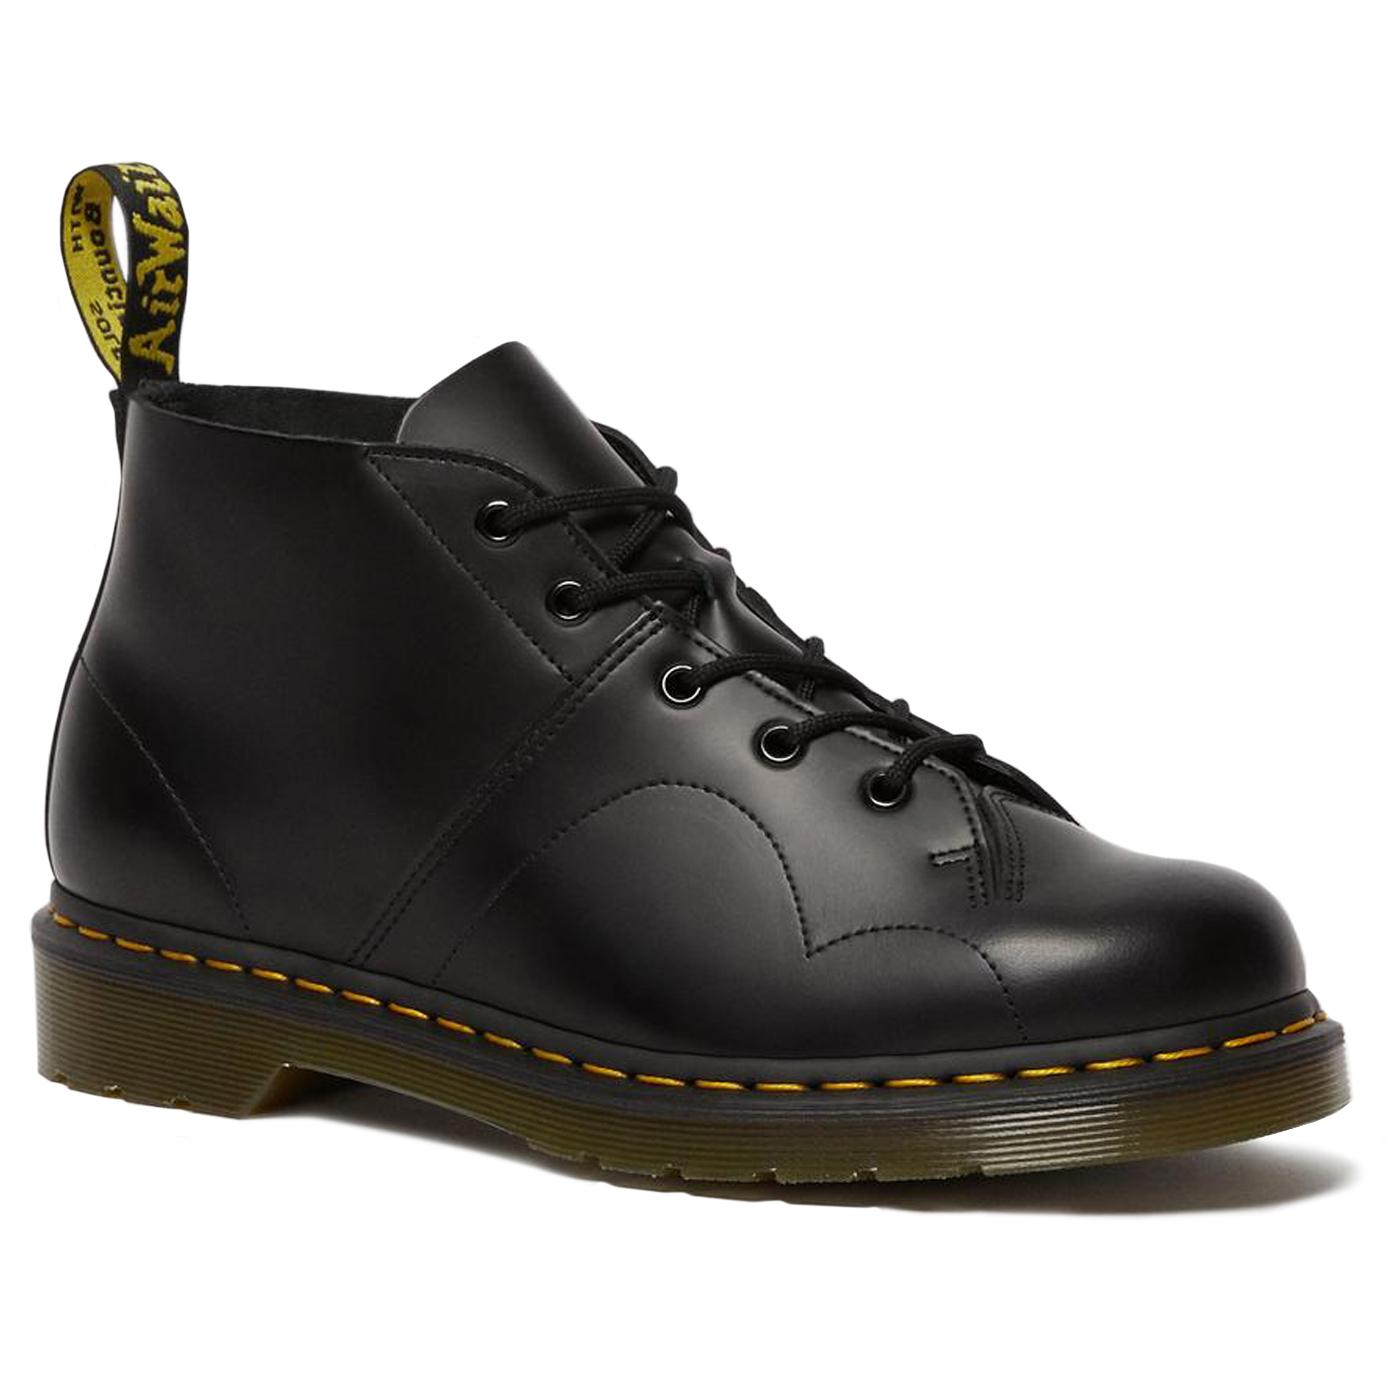 Church DR MARTENS Women's Retro Monkey Boots BLACK